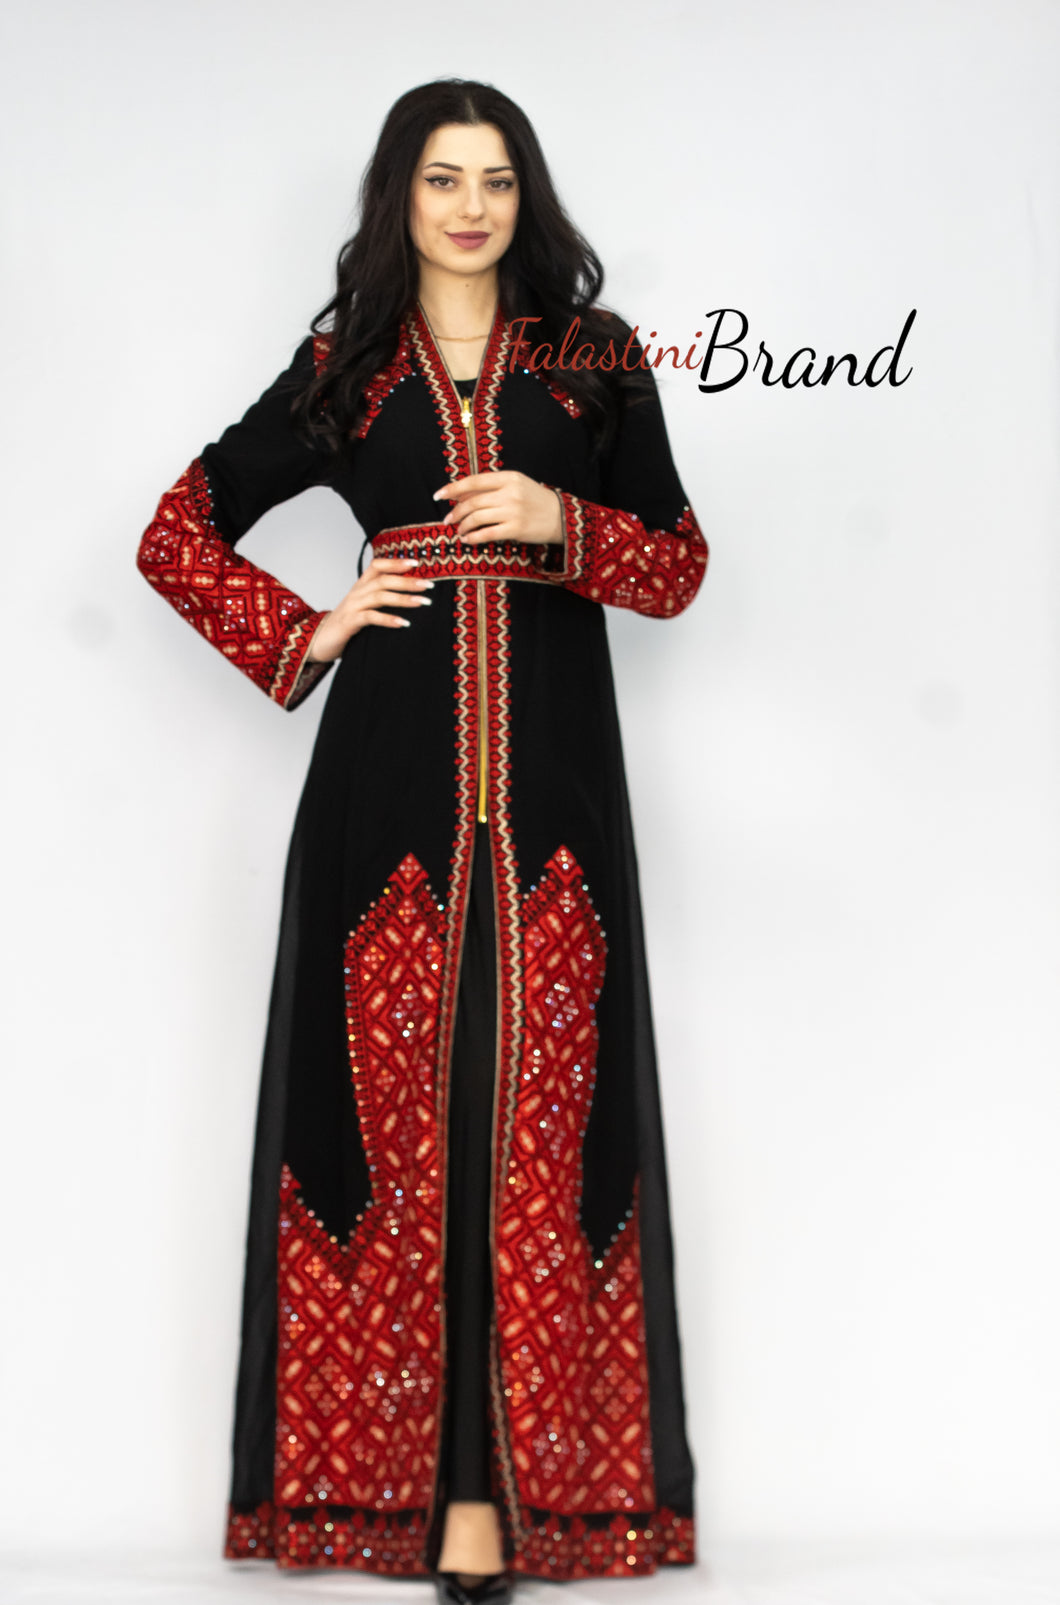 Marvelous Black and Red Palestinian Embroidered Kaftan Dress